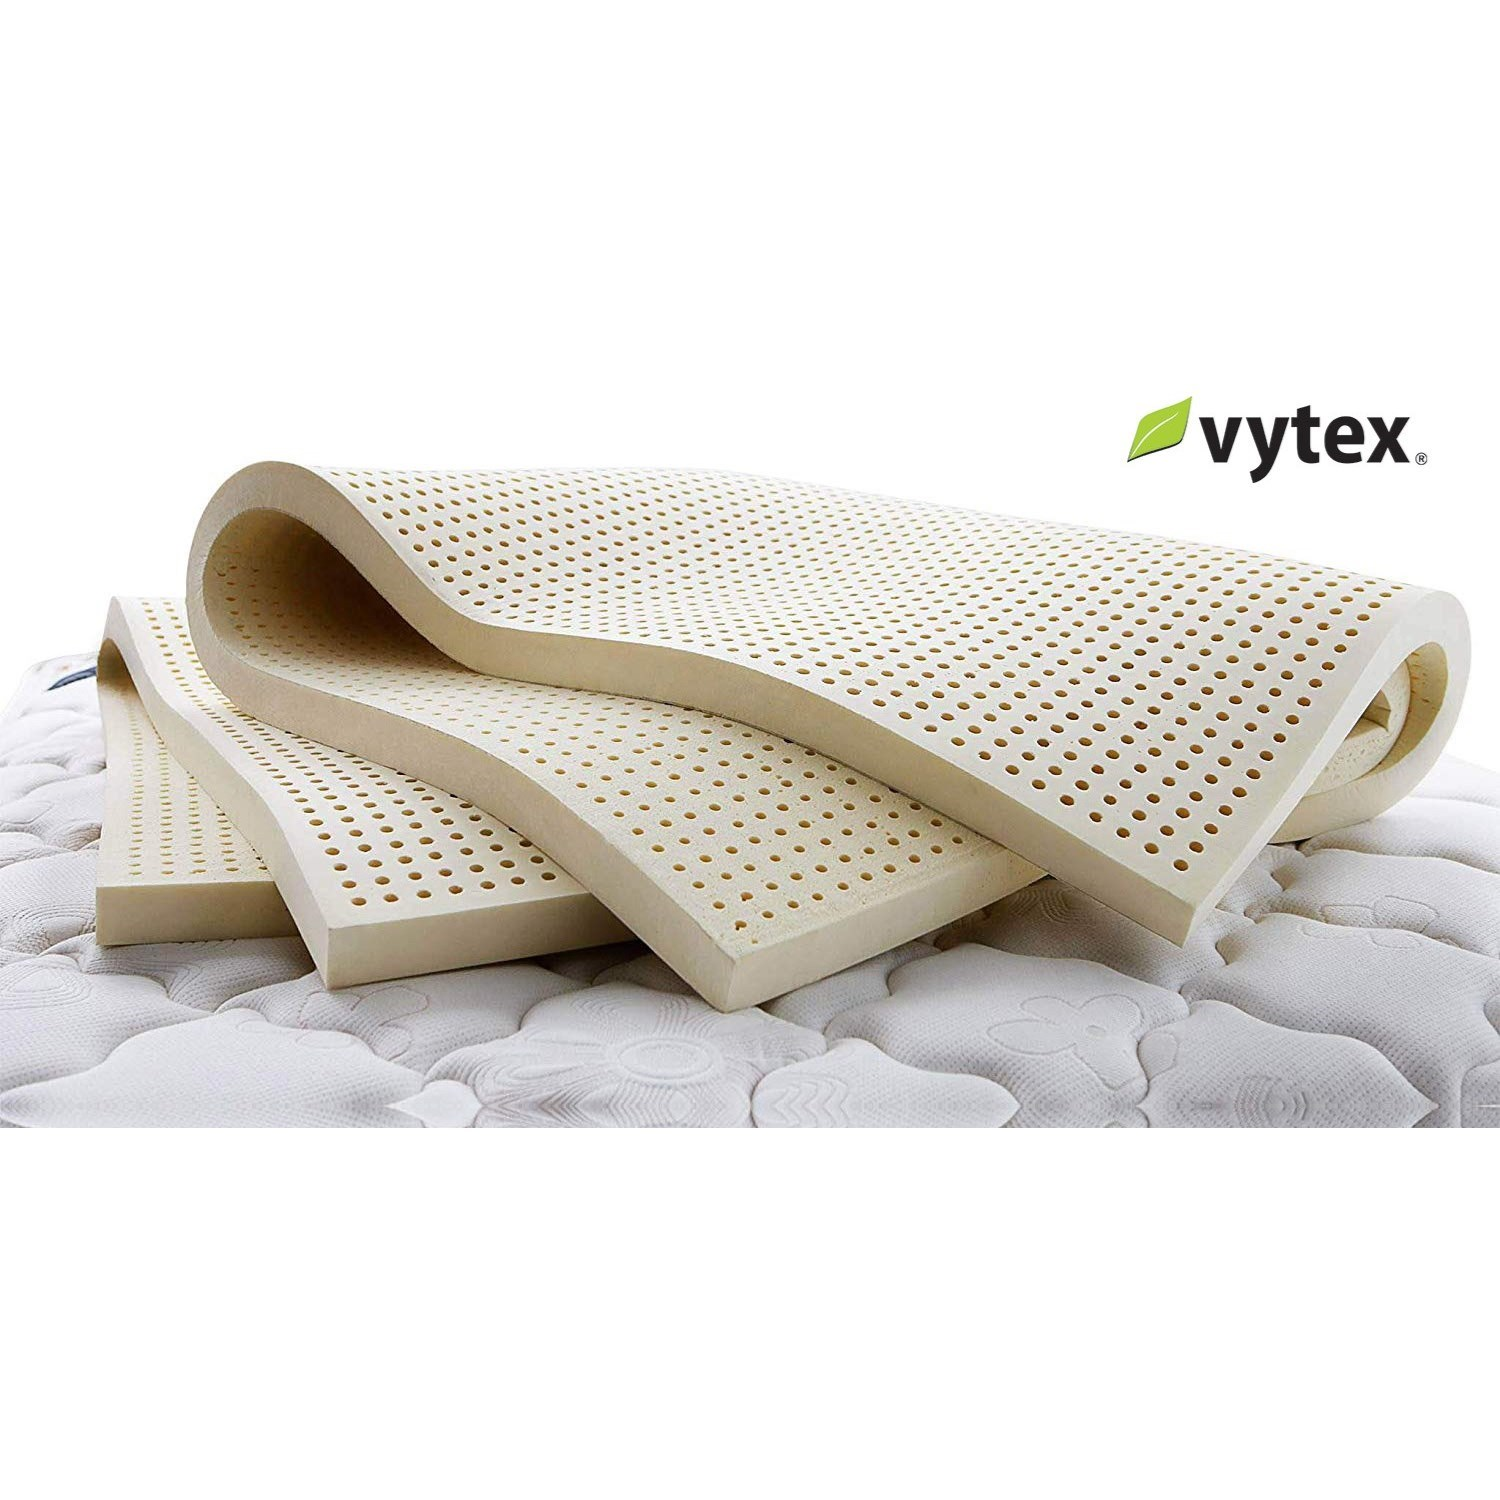 "Vytex Mattress Toppers - Firm Twin XL 3"" Firm Latex Mattress Topper by Vytex at Rotmans"